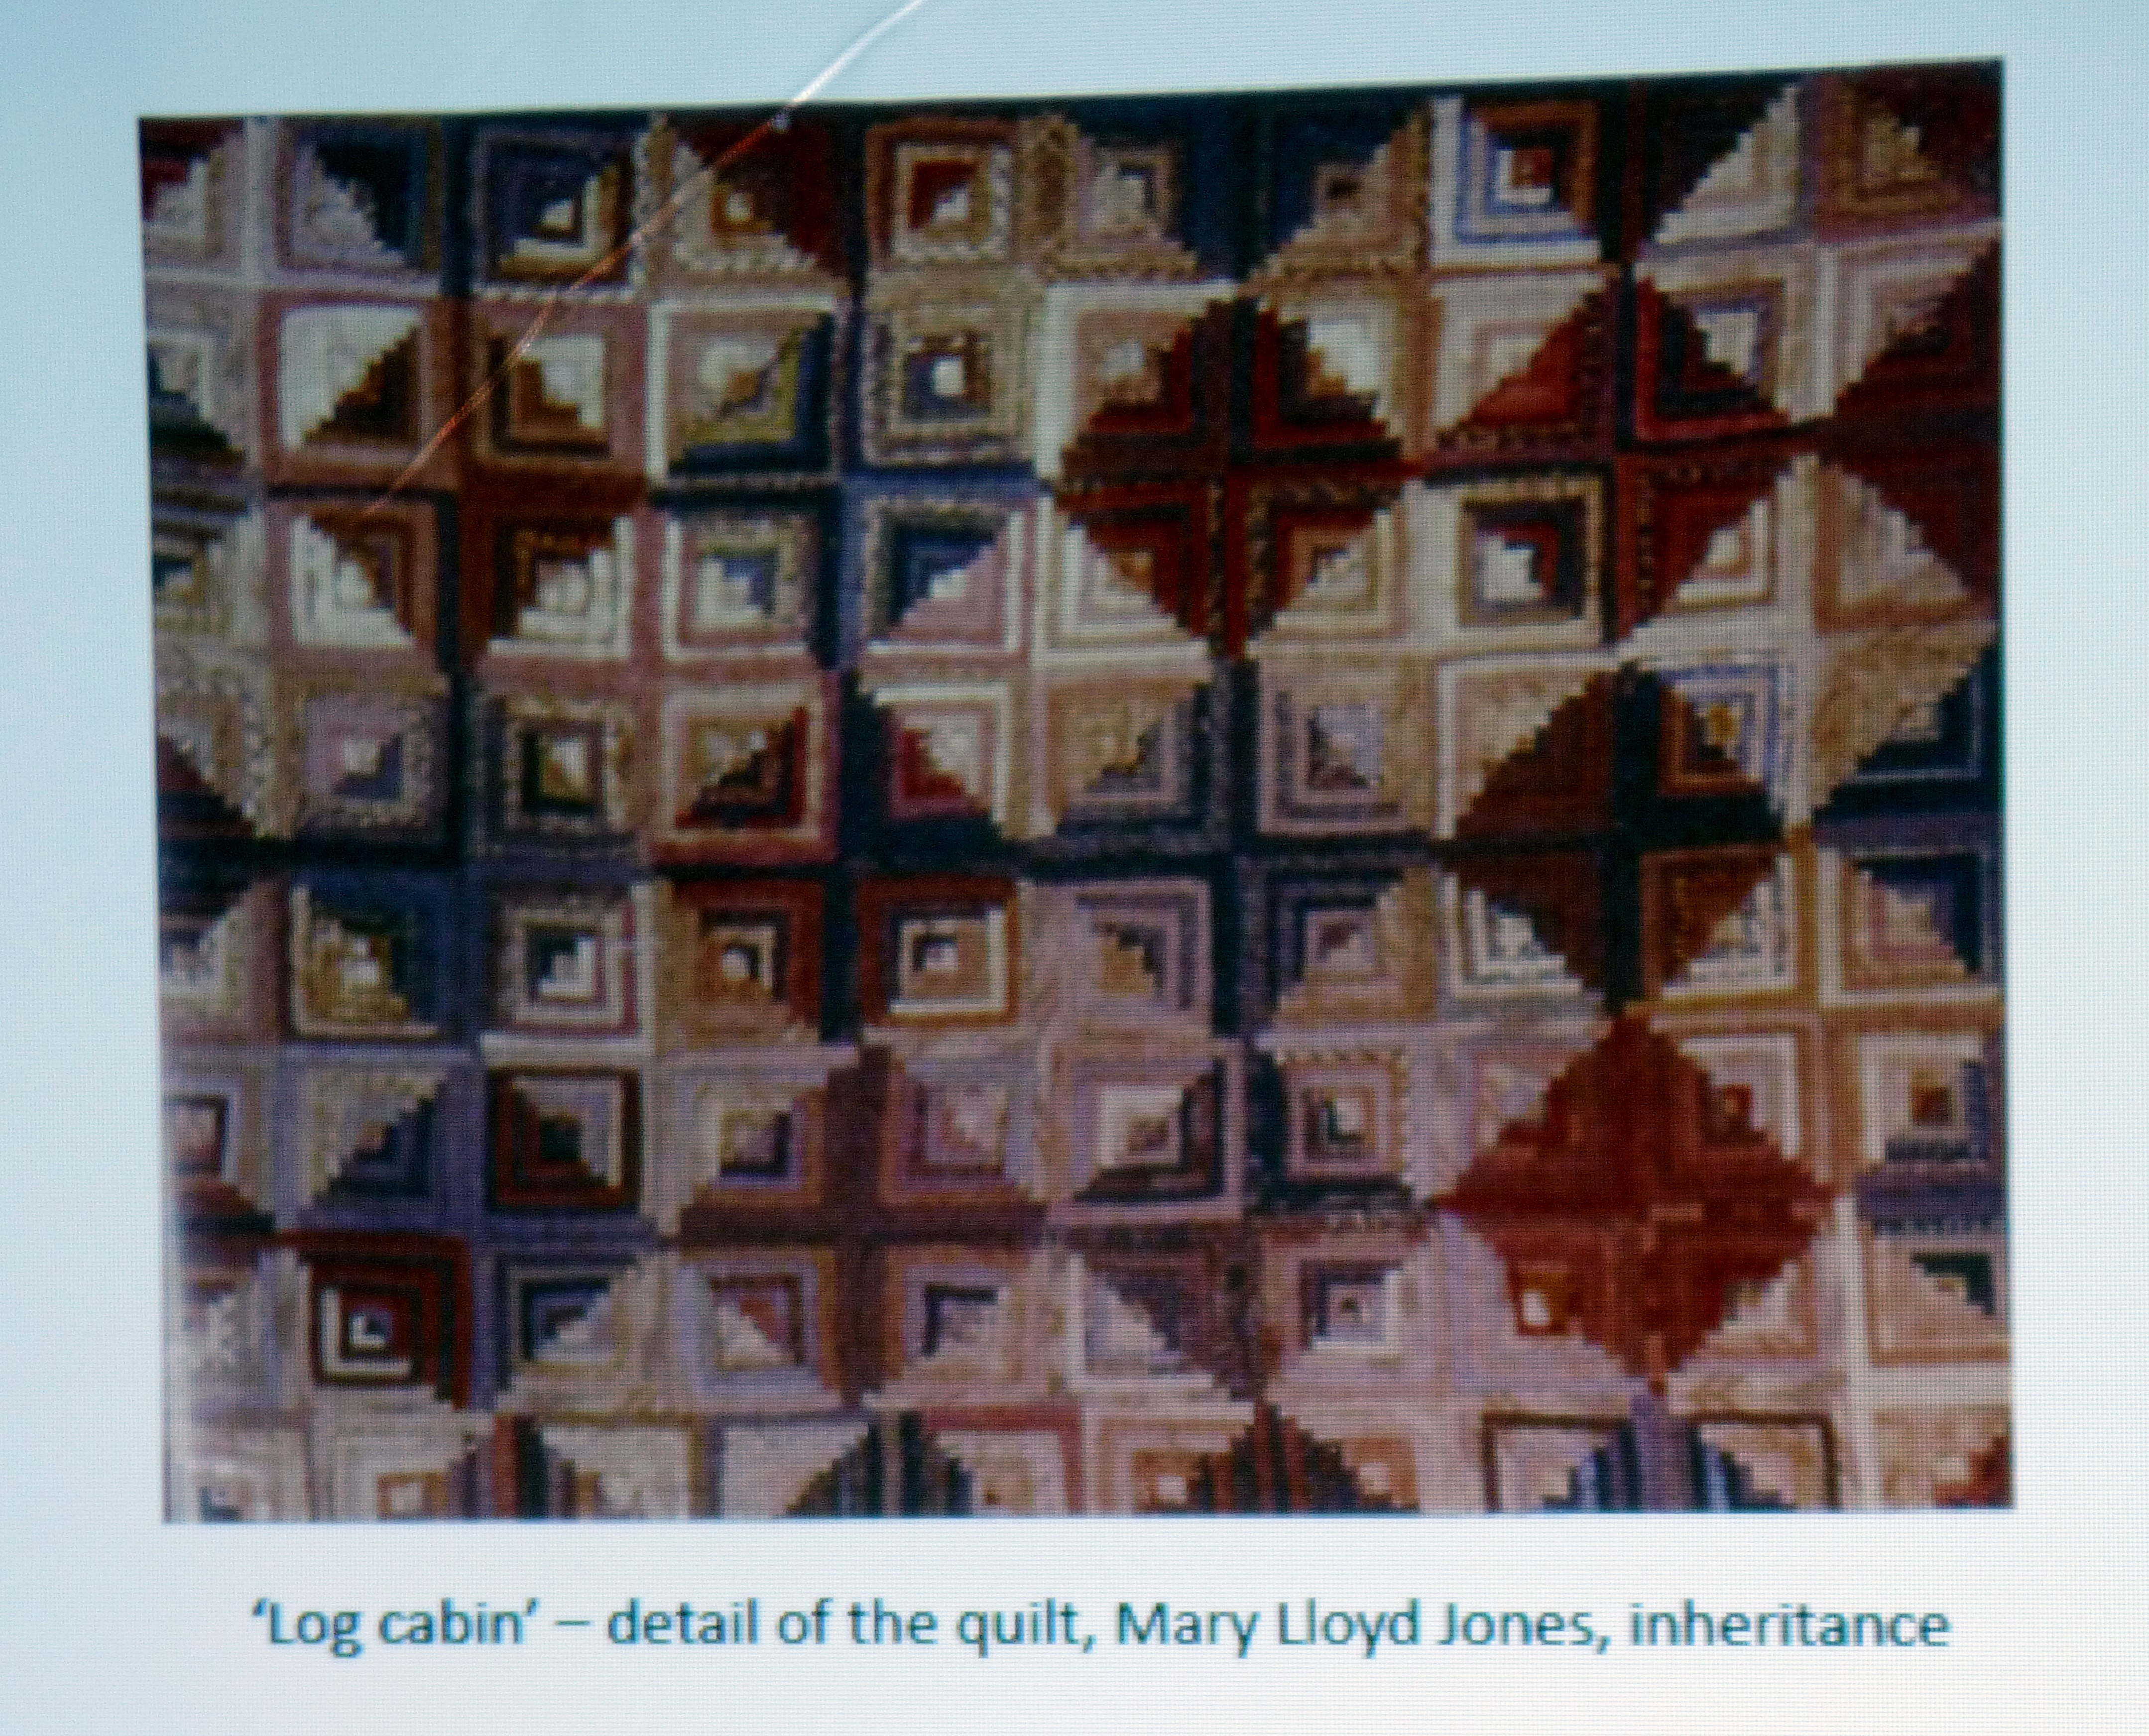 work by Mary LLoyd Jones is an influence in Hanna Roberts practice